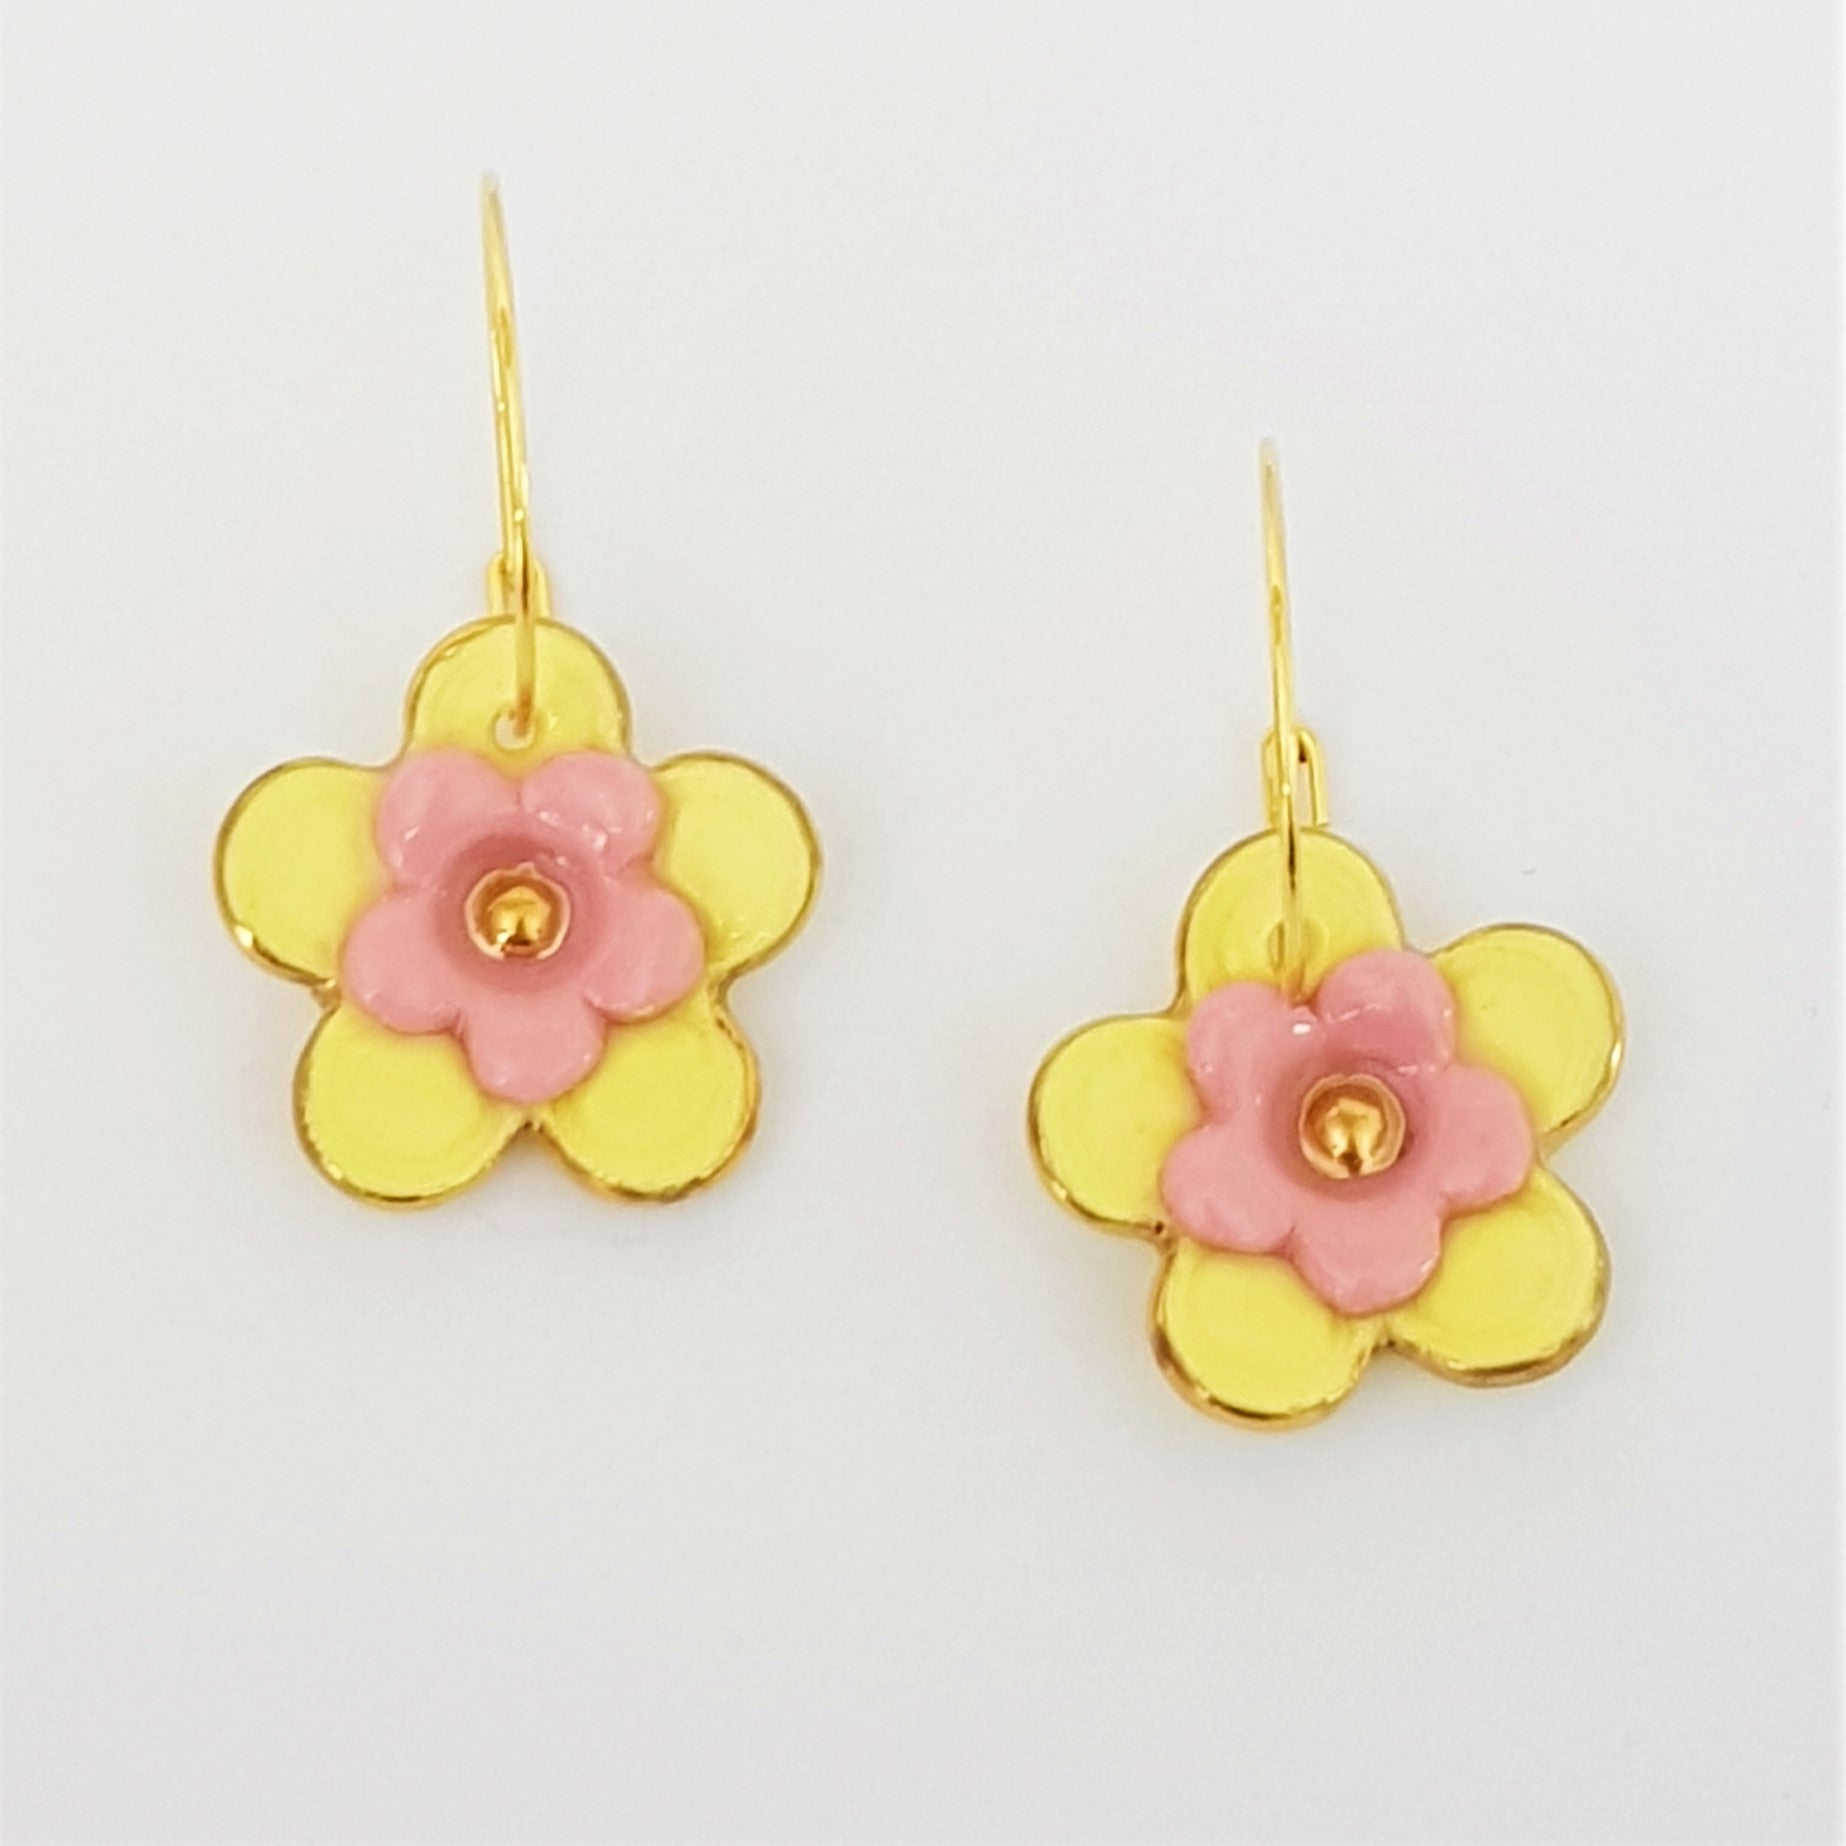 Floral Collective hoops in lemon and pink.